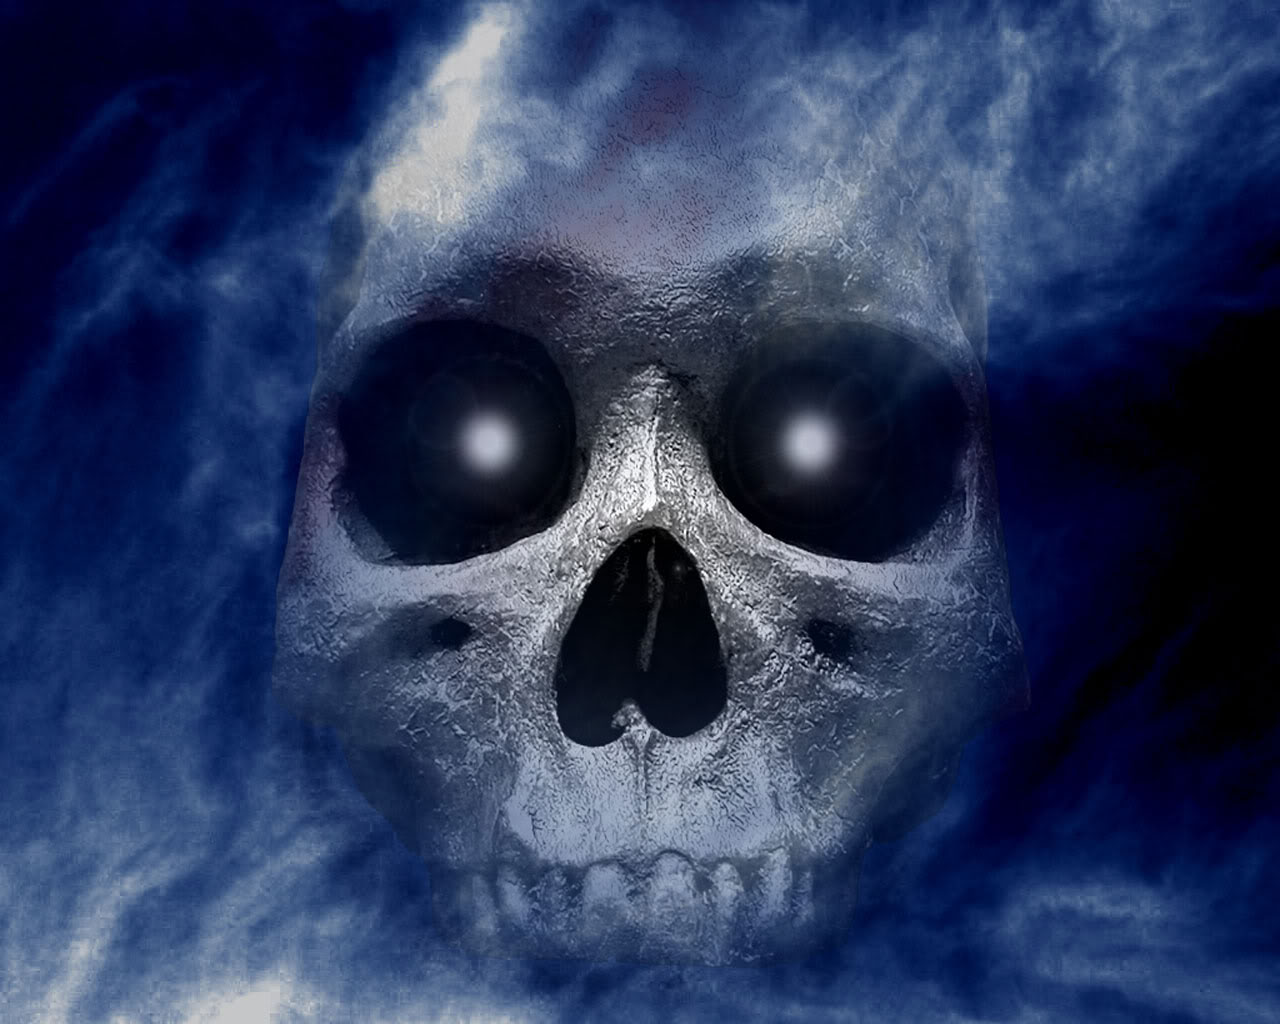 Download Scary Skulls wallpaper halloween skull wallpaper 1280x1024